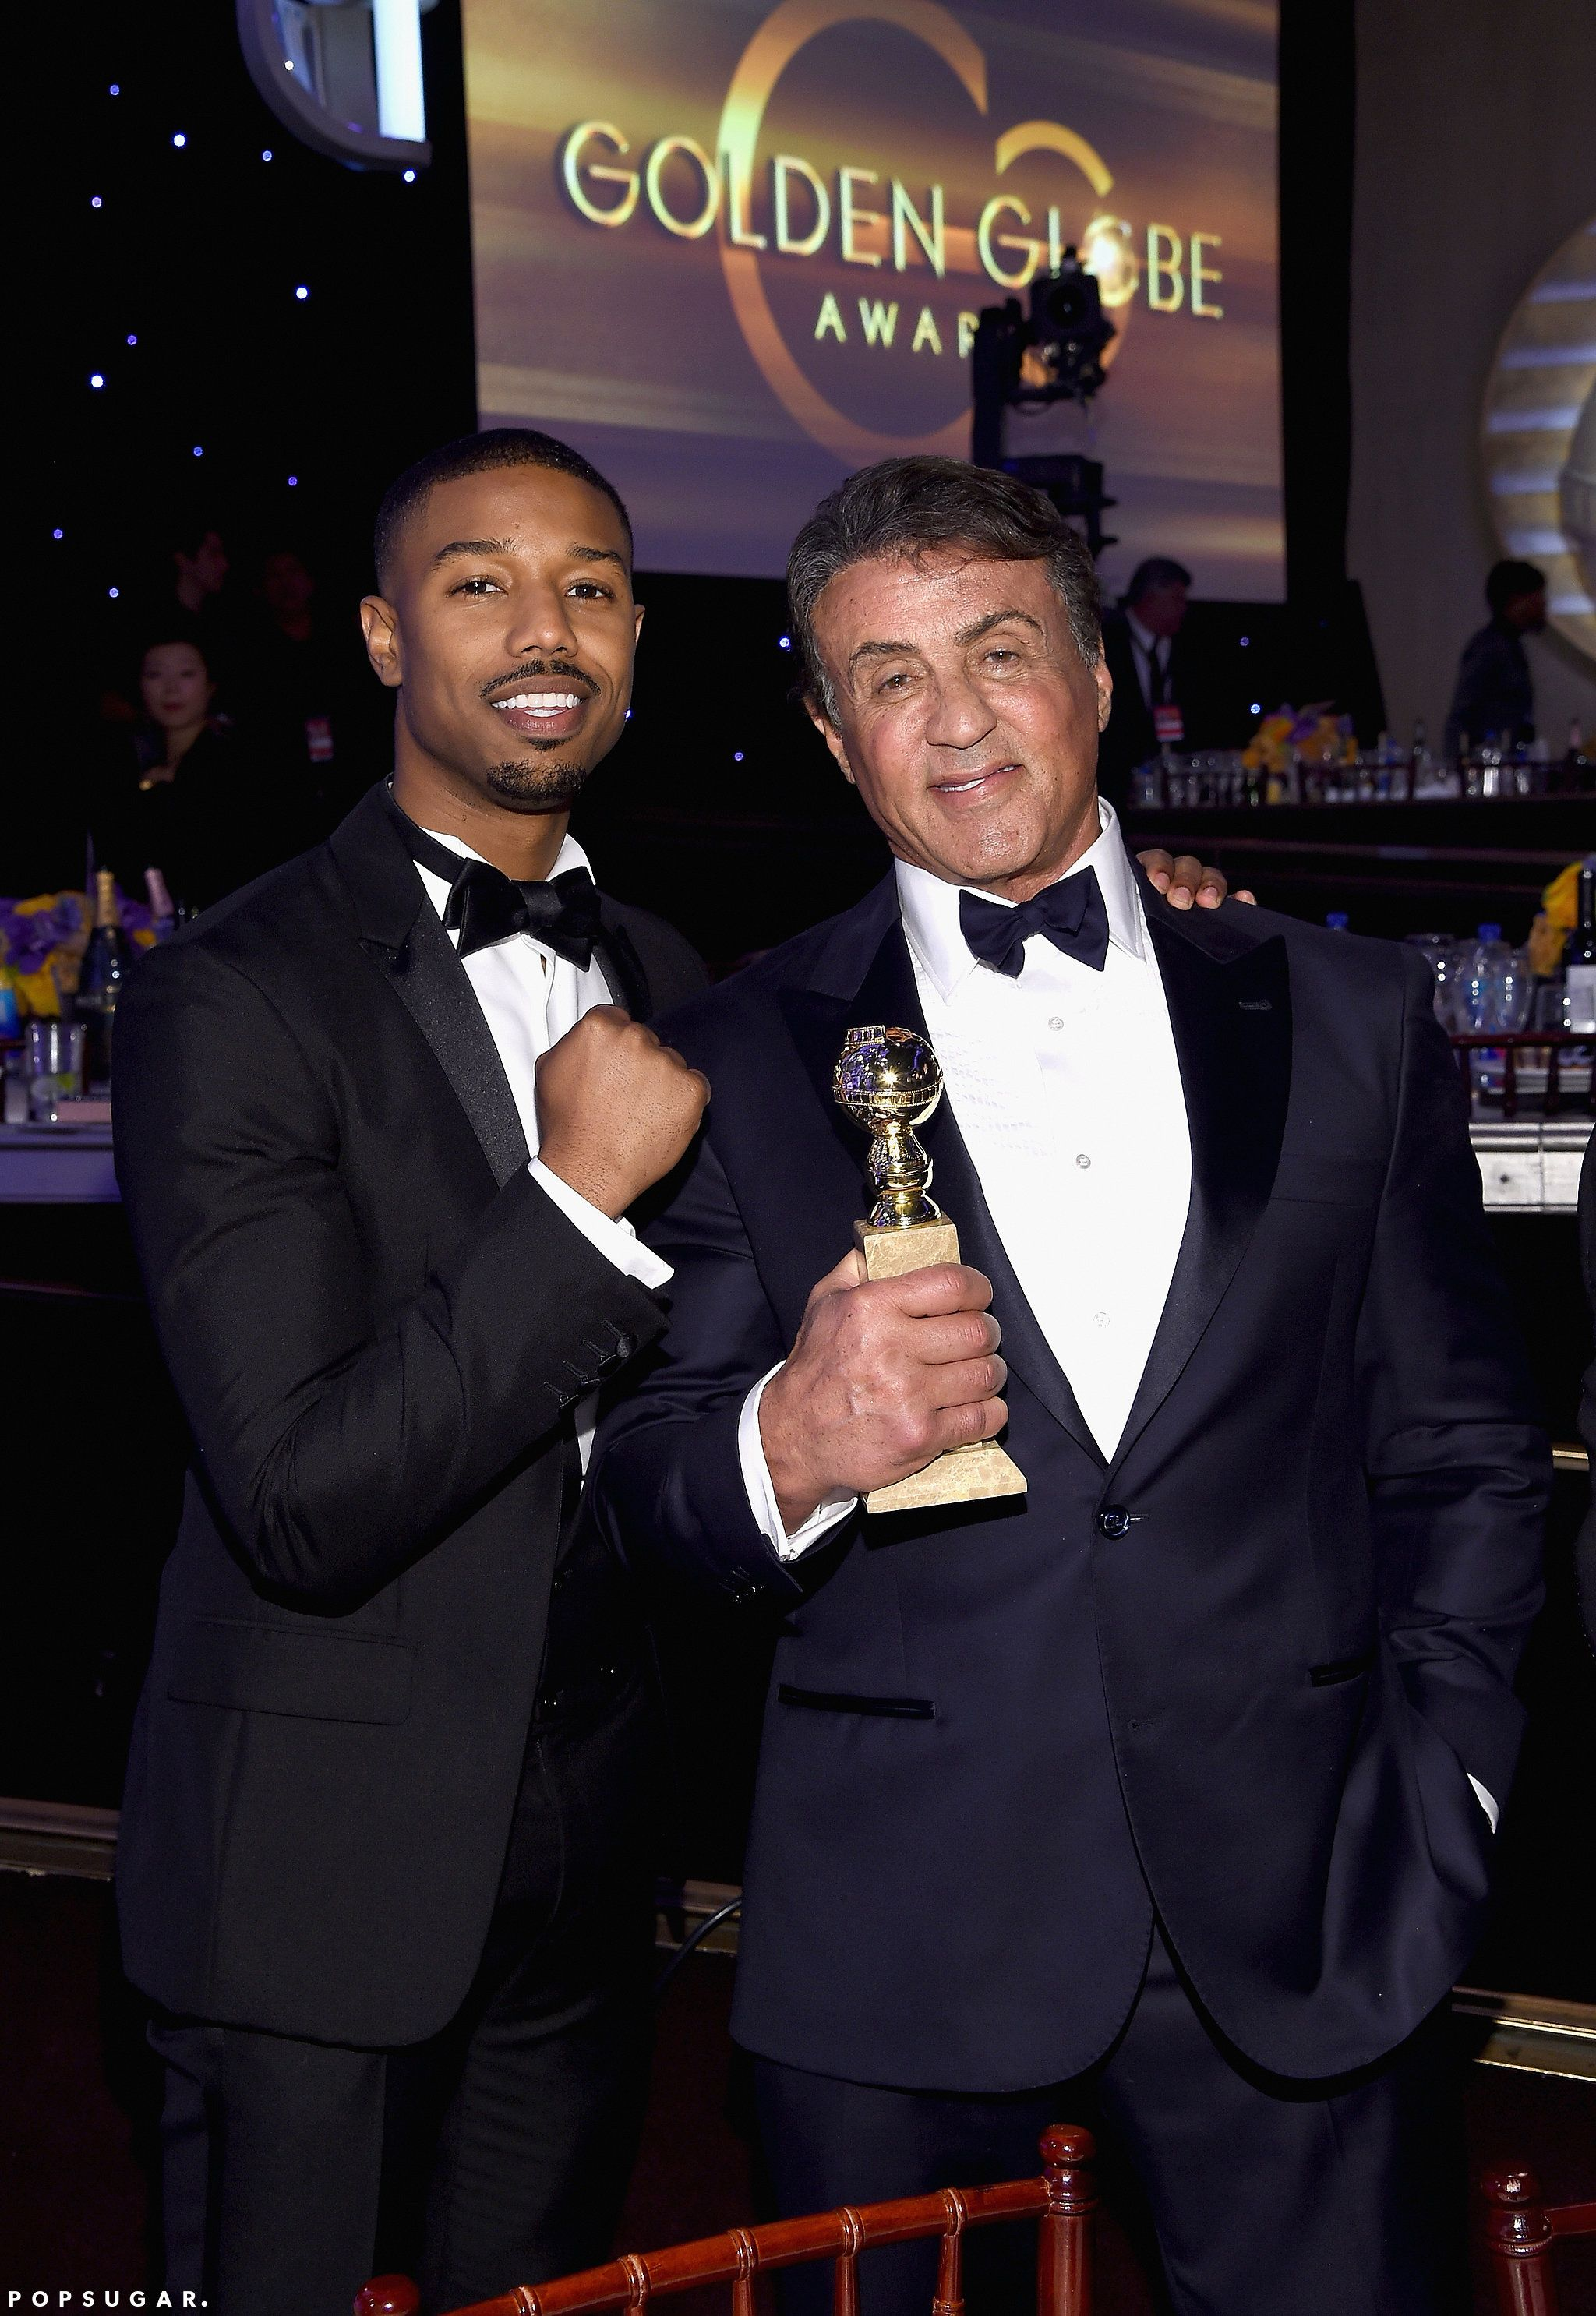 boicotear Camarada conformidad  Creed costars Michael B. Jordan and Sylvester Stallone celebrated his big  win. | Sylvester stallone, Michael b jordan, Michael bakari jordan